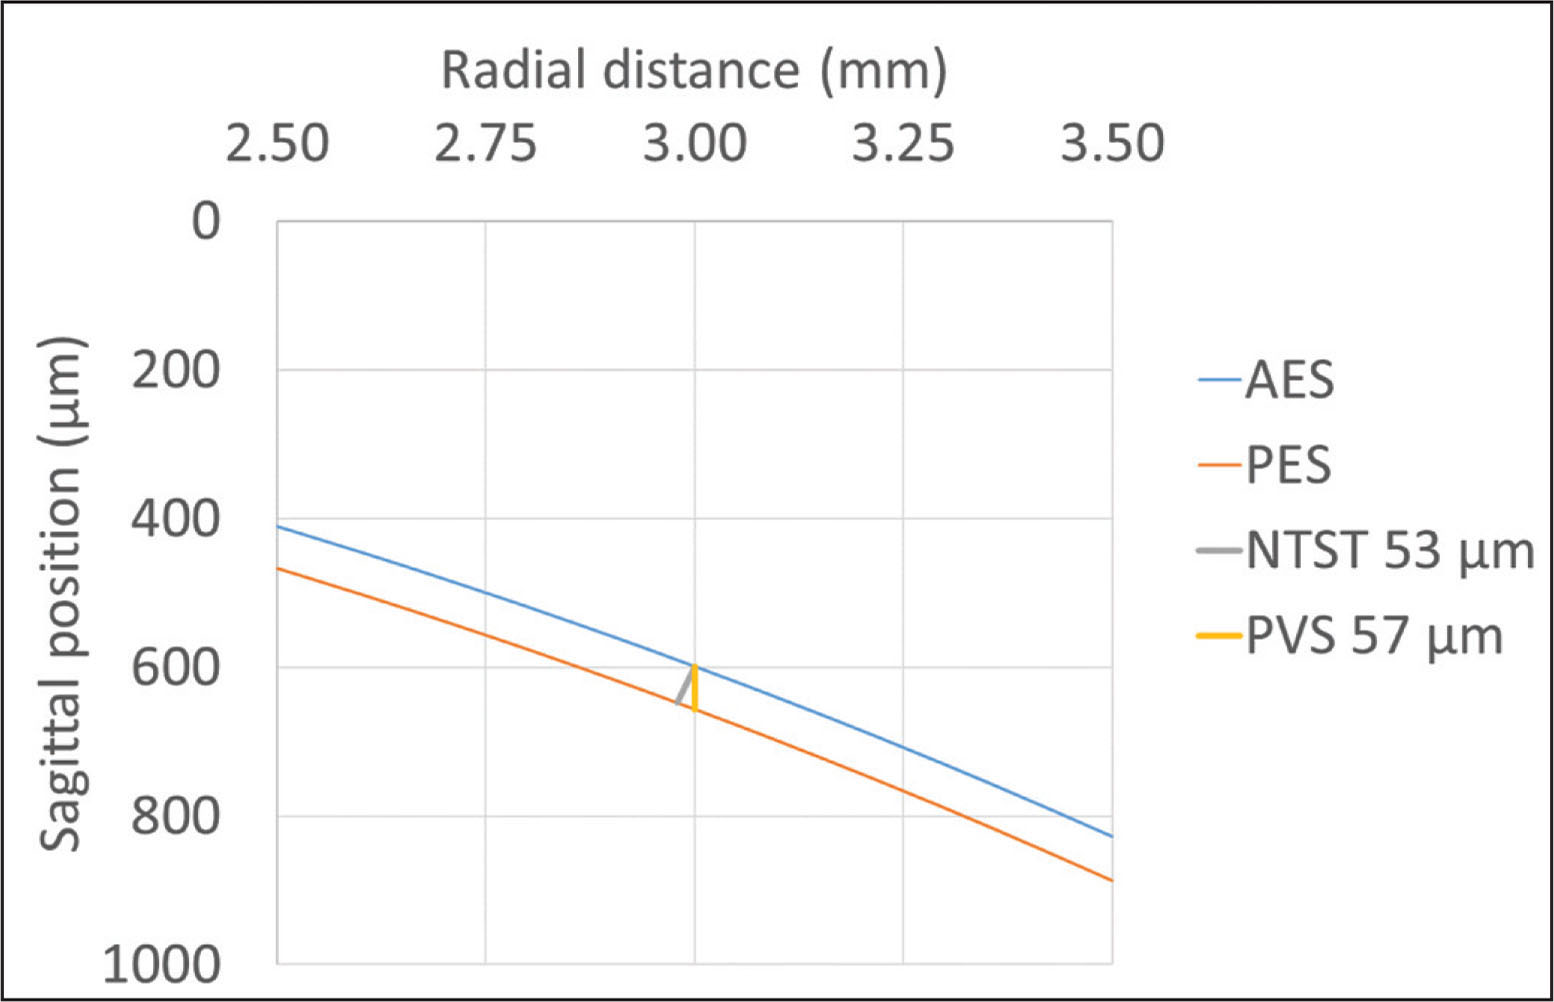 Comparison of the normal-to-the-surface-tangent (NTST) vs parallel vertical sections (PVS) methods for determining/defining epithelial thickness. The thickness measured along the PVS reads thicker than measured along the NTST. AES = anterior epithelial surface; PES = posterior epithelial surface (anterior stromal surface)